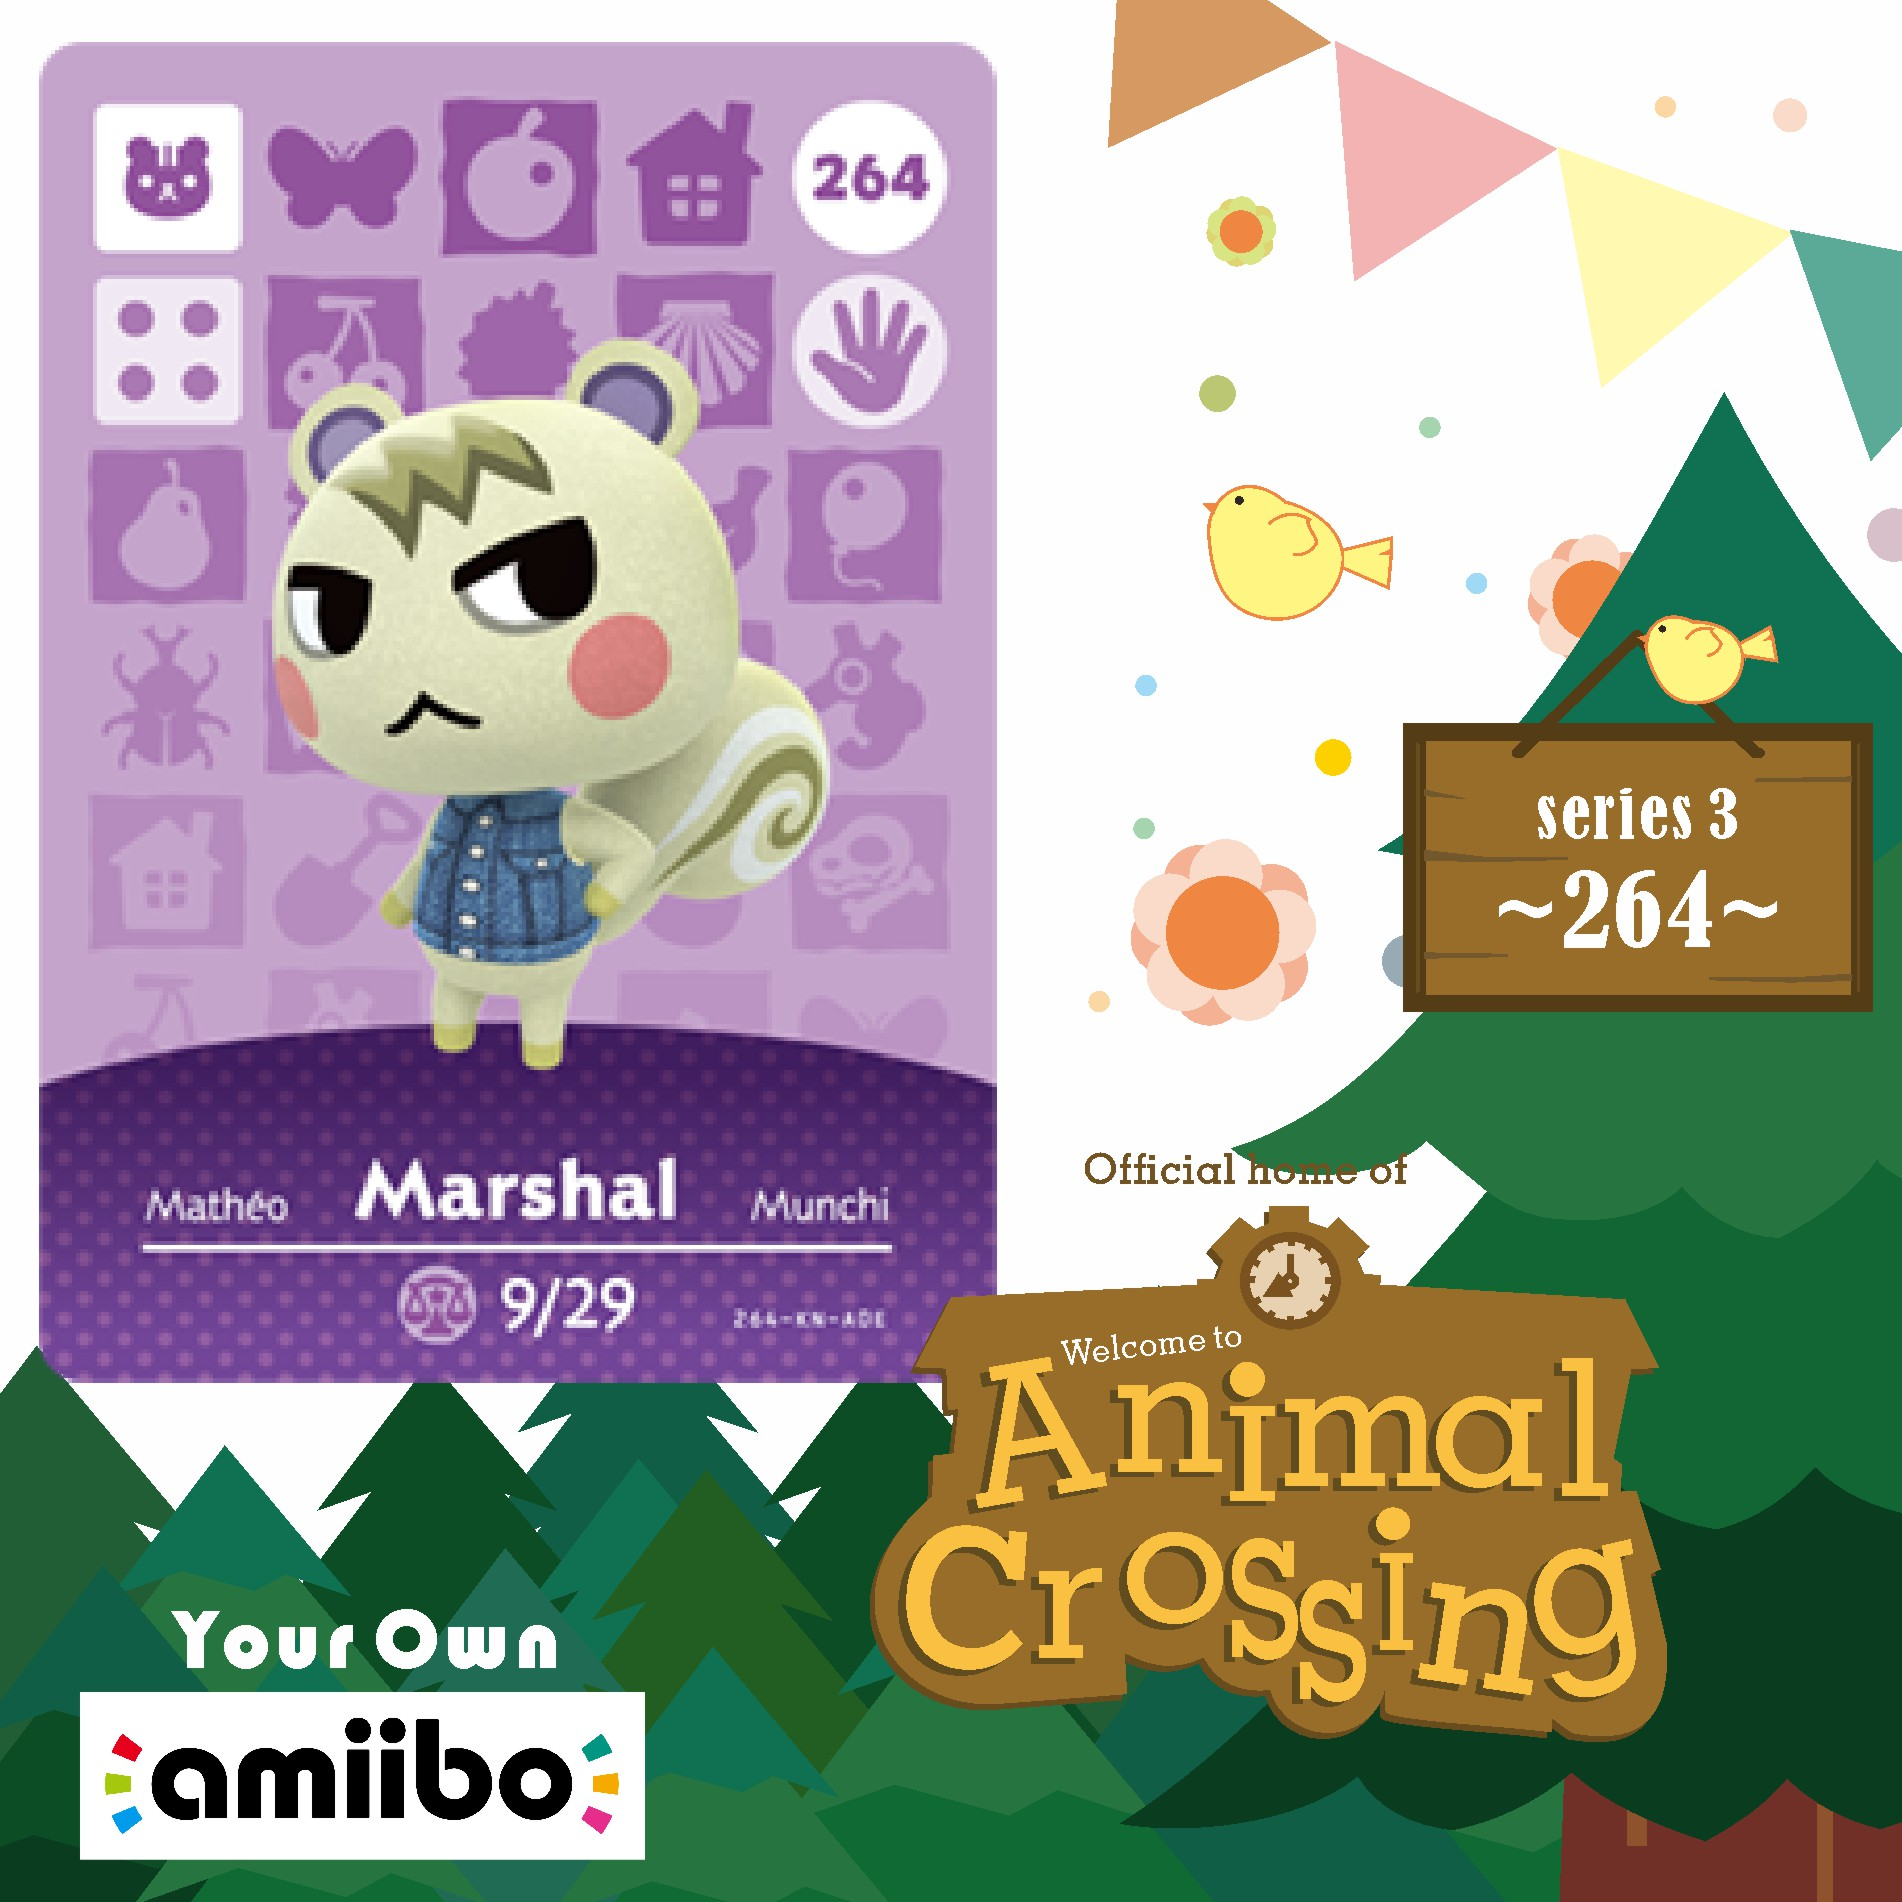 264 Marshal Amiibo Card Animal Crossing Series 3 Marshal Animal Crossing Amiibo Card Work For Ns Games Nfc Card Dropshipping